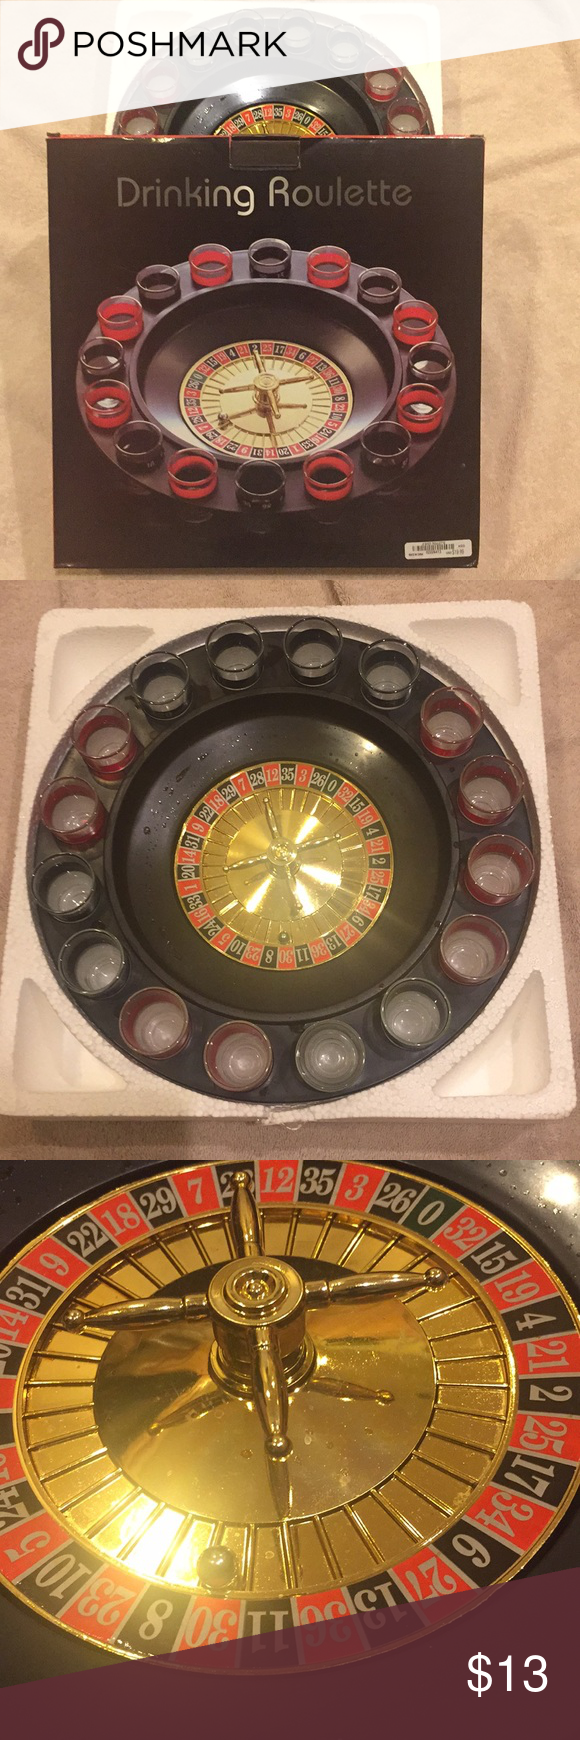 Drinking Roulette Roulette, Original box, Black and red